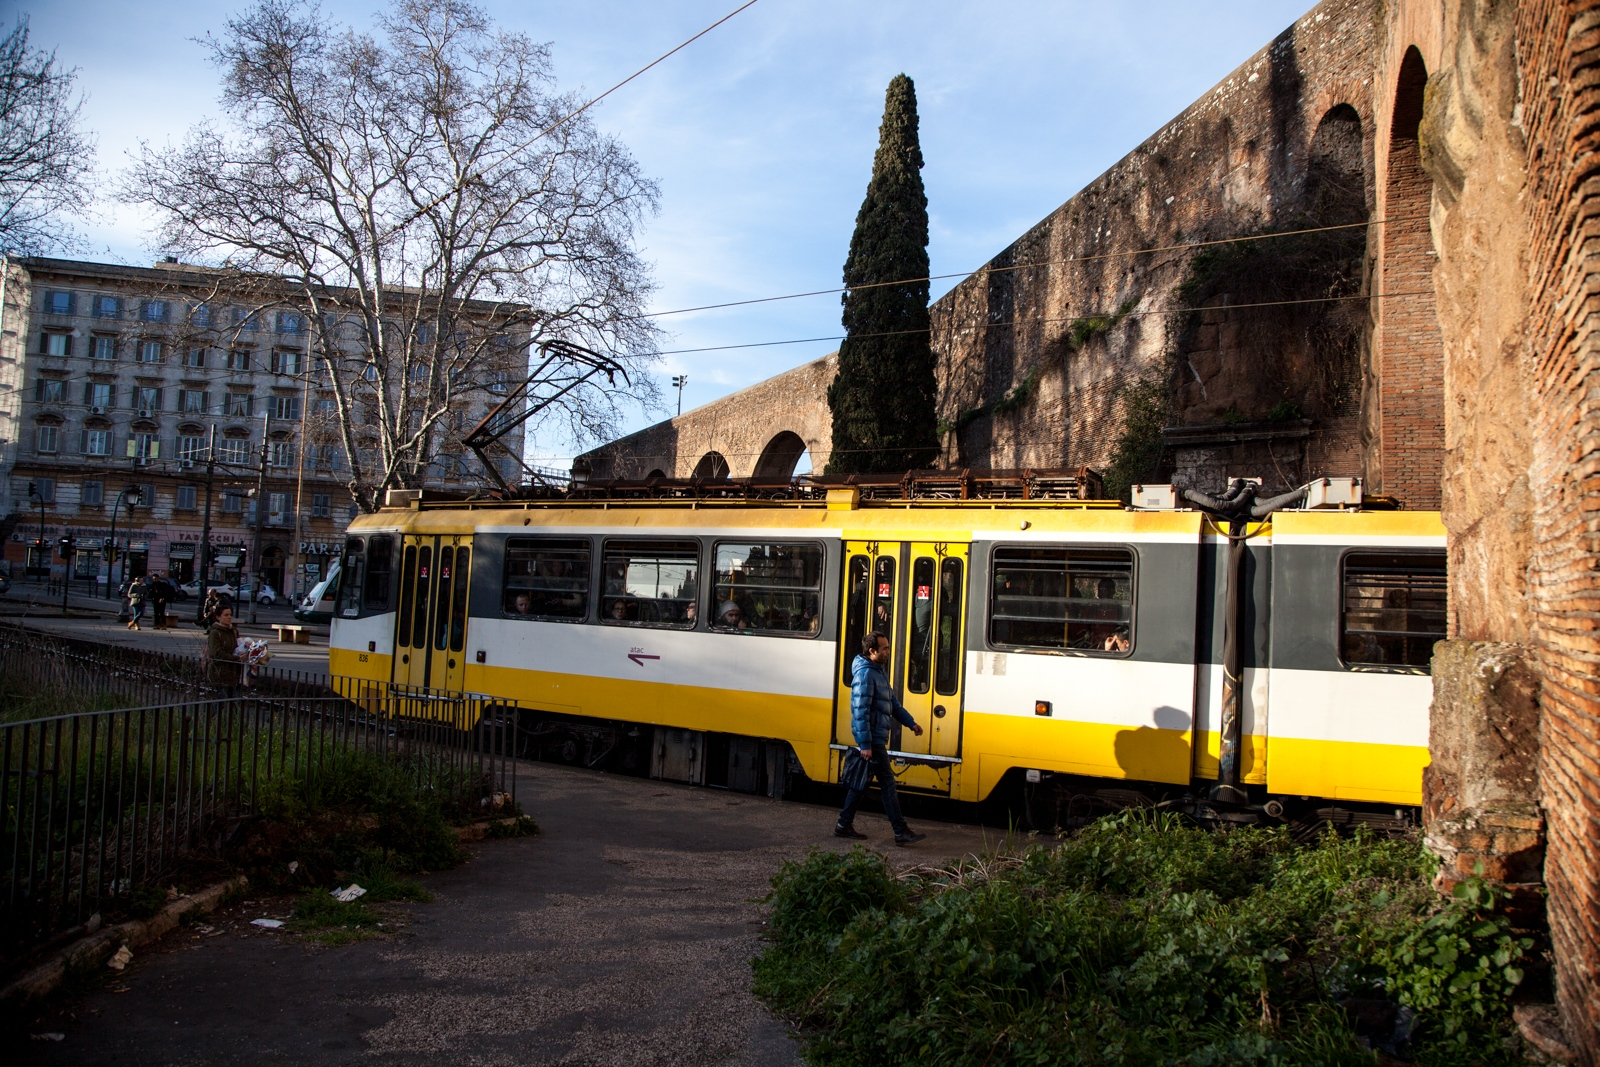 March 27, 2018 - A cable car makes a stop in Porta Maggiore. The square is a meeting point of many different lines of public transportation in Rome, from the multicultural suburbs all the way to the main train hub of Termini. Sometimes after the afternoon prayer, local imams who preach in the closer neighborhoods of Torpignattara and Centocelle take these trains to find new people to invite to the mosque.